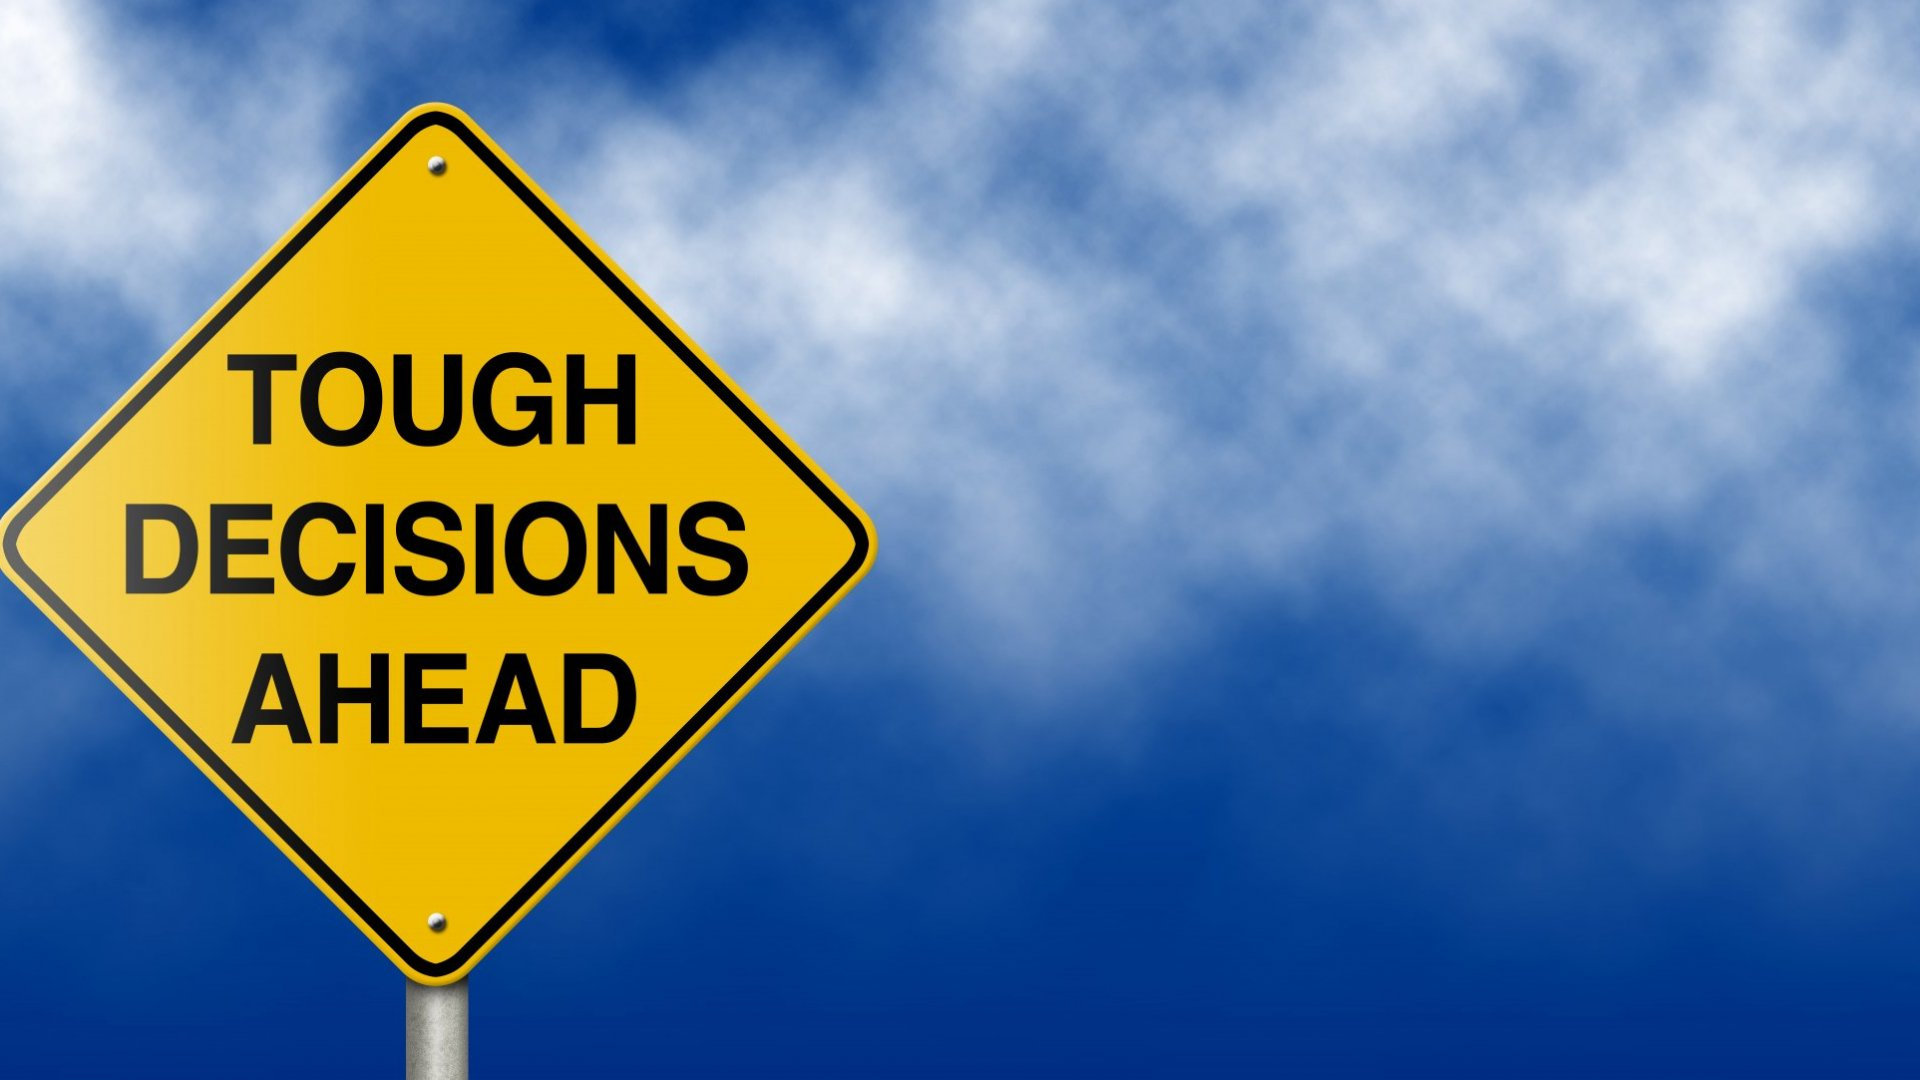 Want to Be a Better Decision-Maker? Just Follow These 3 Guidelines